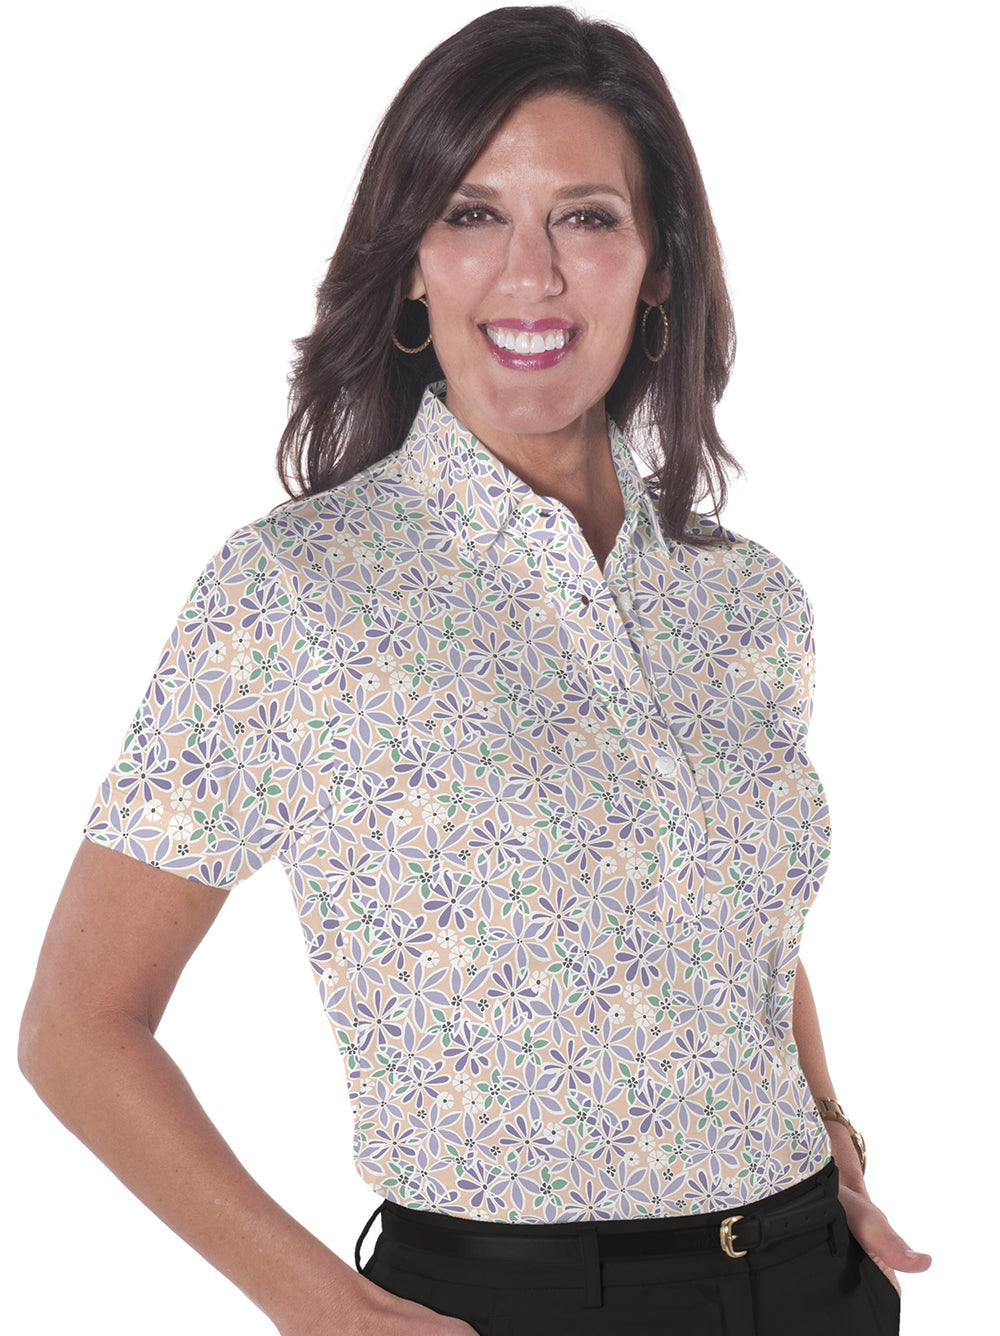 Petite Short Sleeve Print Polo Shirts</br>Sweet Serenade 02M - Leonlevin